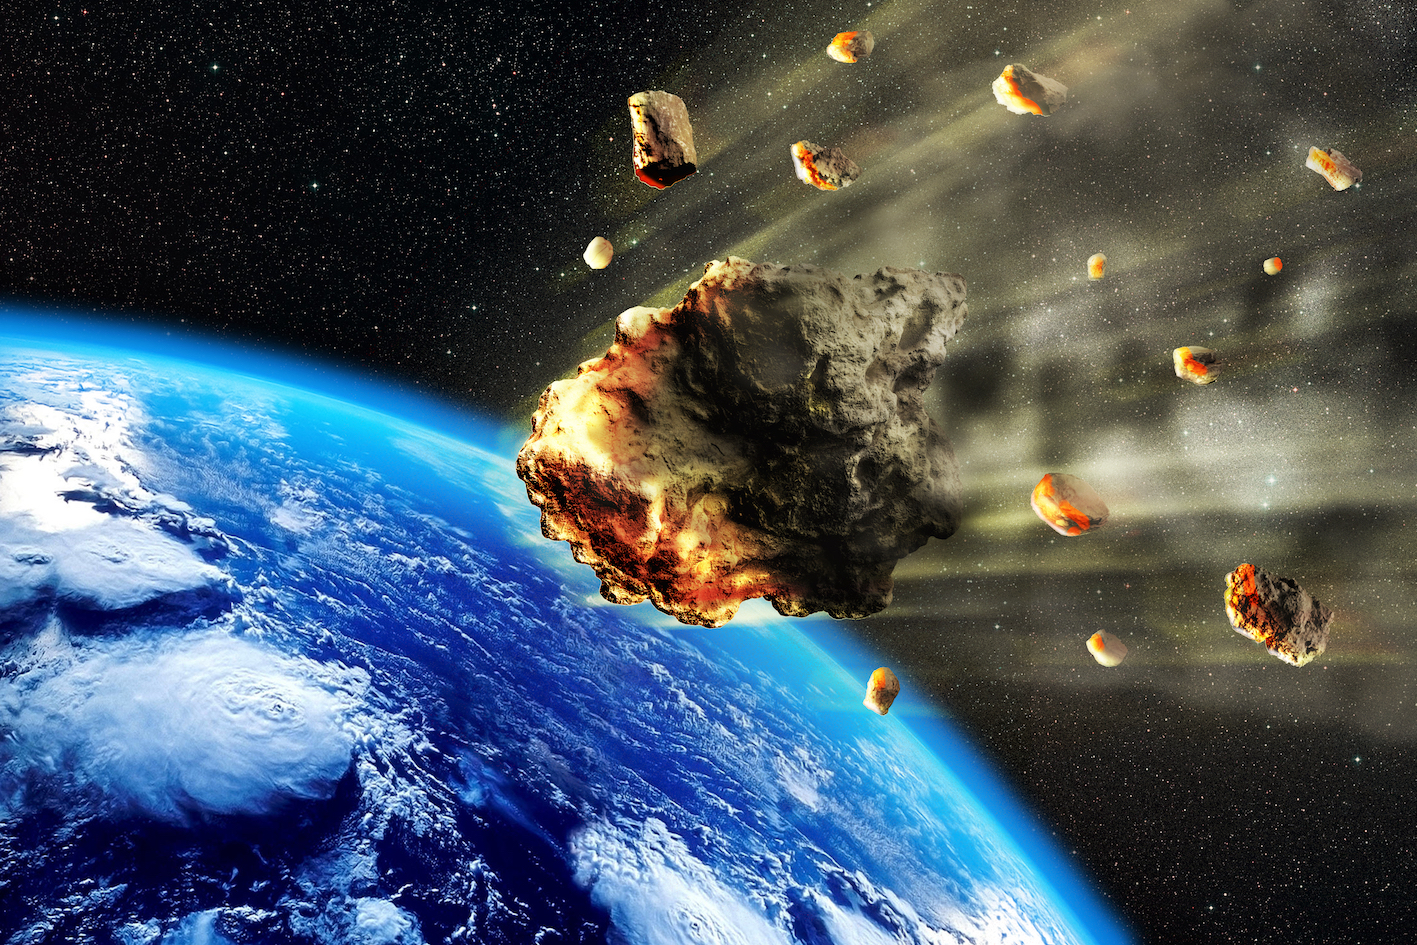 Most asteroids emerged from the disintegration of just a few minor planets that formed during the earliest days of our solar system.